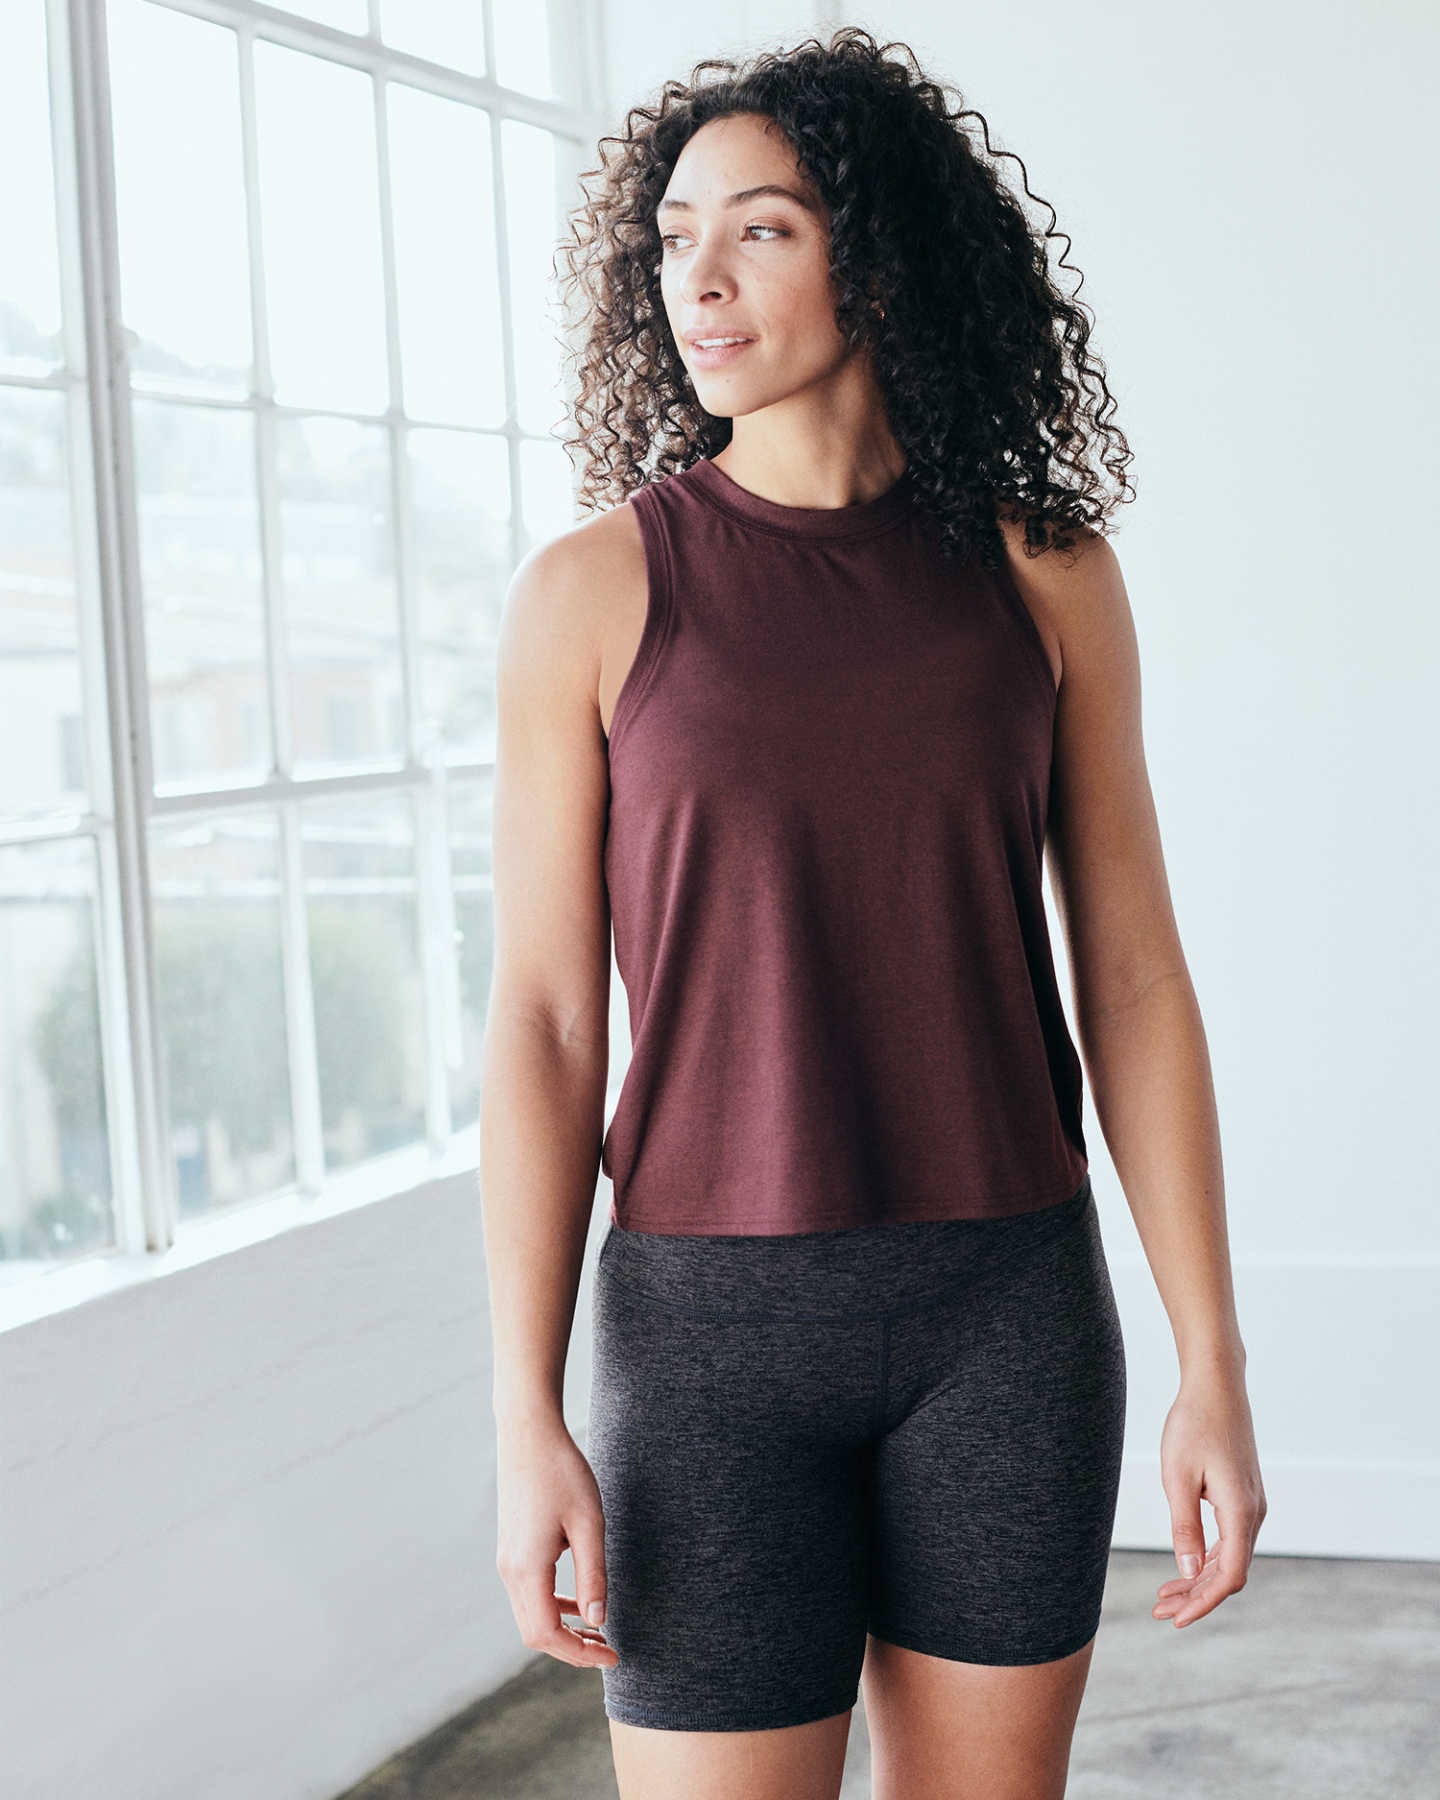 Flowknit Ultra-Soft Performance Tank - Burgundy - 2